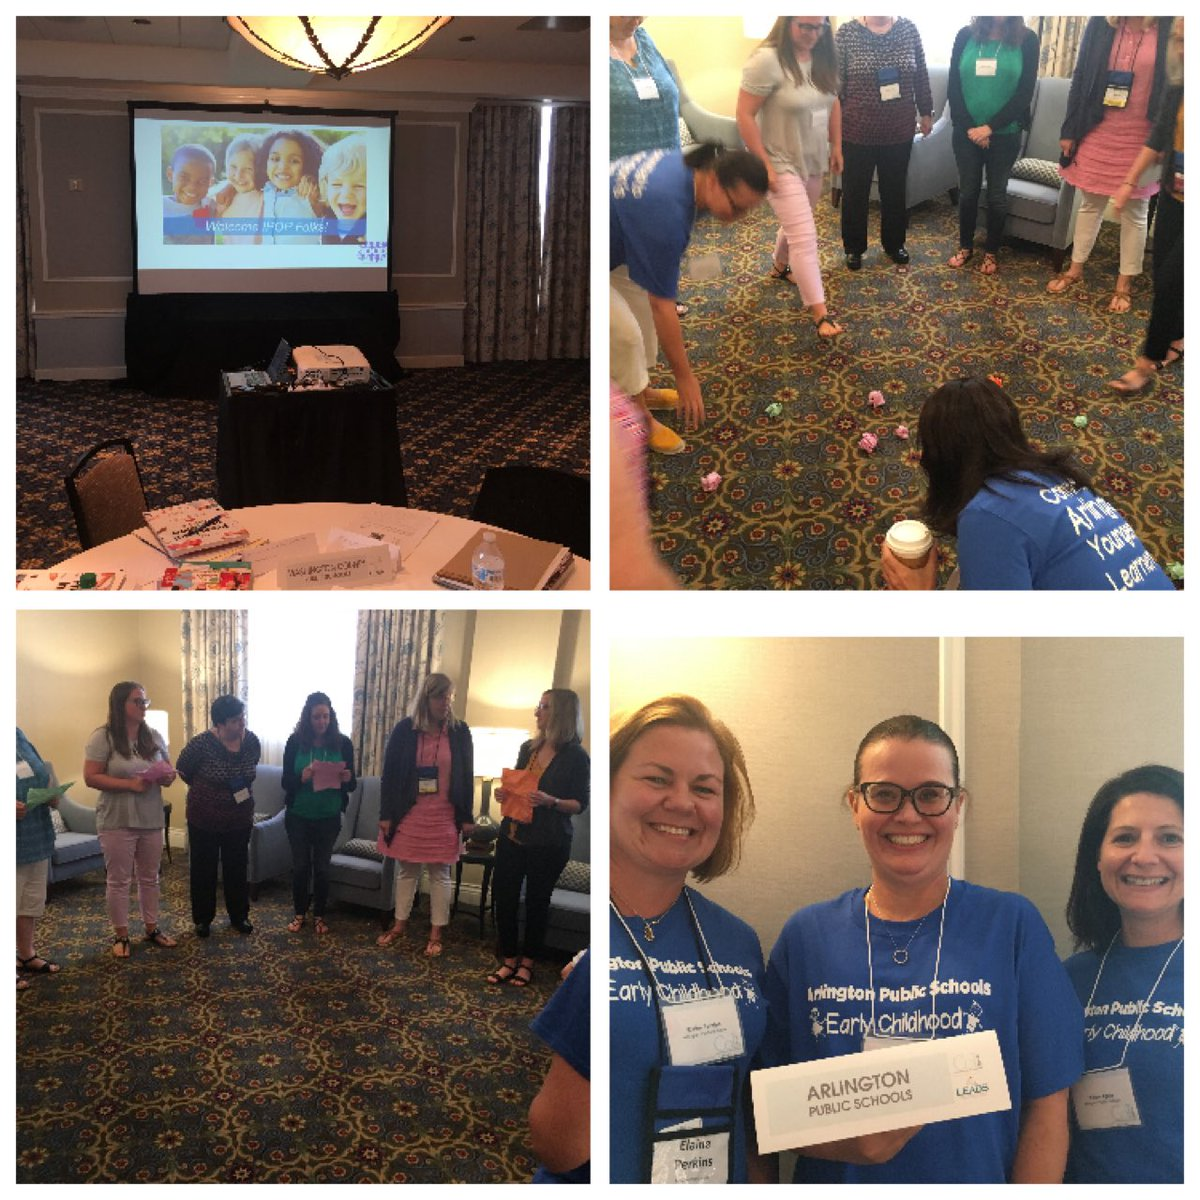 Community of Learners At VDOE conference with Cathy Genove and Karen Agate <a target='_blank' href='http://twitter.com/MPSArlington'>@MPSArlington</a> Thanks <a target='_blank' href='http://twitter.com/VDOE_News'>@VDOE_News</a> ! <a target='_blank' href='http://search.twitter.com/search?q=inclusion'><a target='_blank' href='https://twitter.com/hashtag/inclusion?src=hash'>#inclusion</a></a> <a target='_blank' href='http://twitter.com/APSVirginia'>@APSVirginia</a> <a target='_blank' href='https://t.co/oTOuA2vfz7'>https://t.co/oTOuA2vfz7</a>